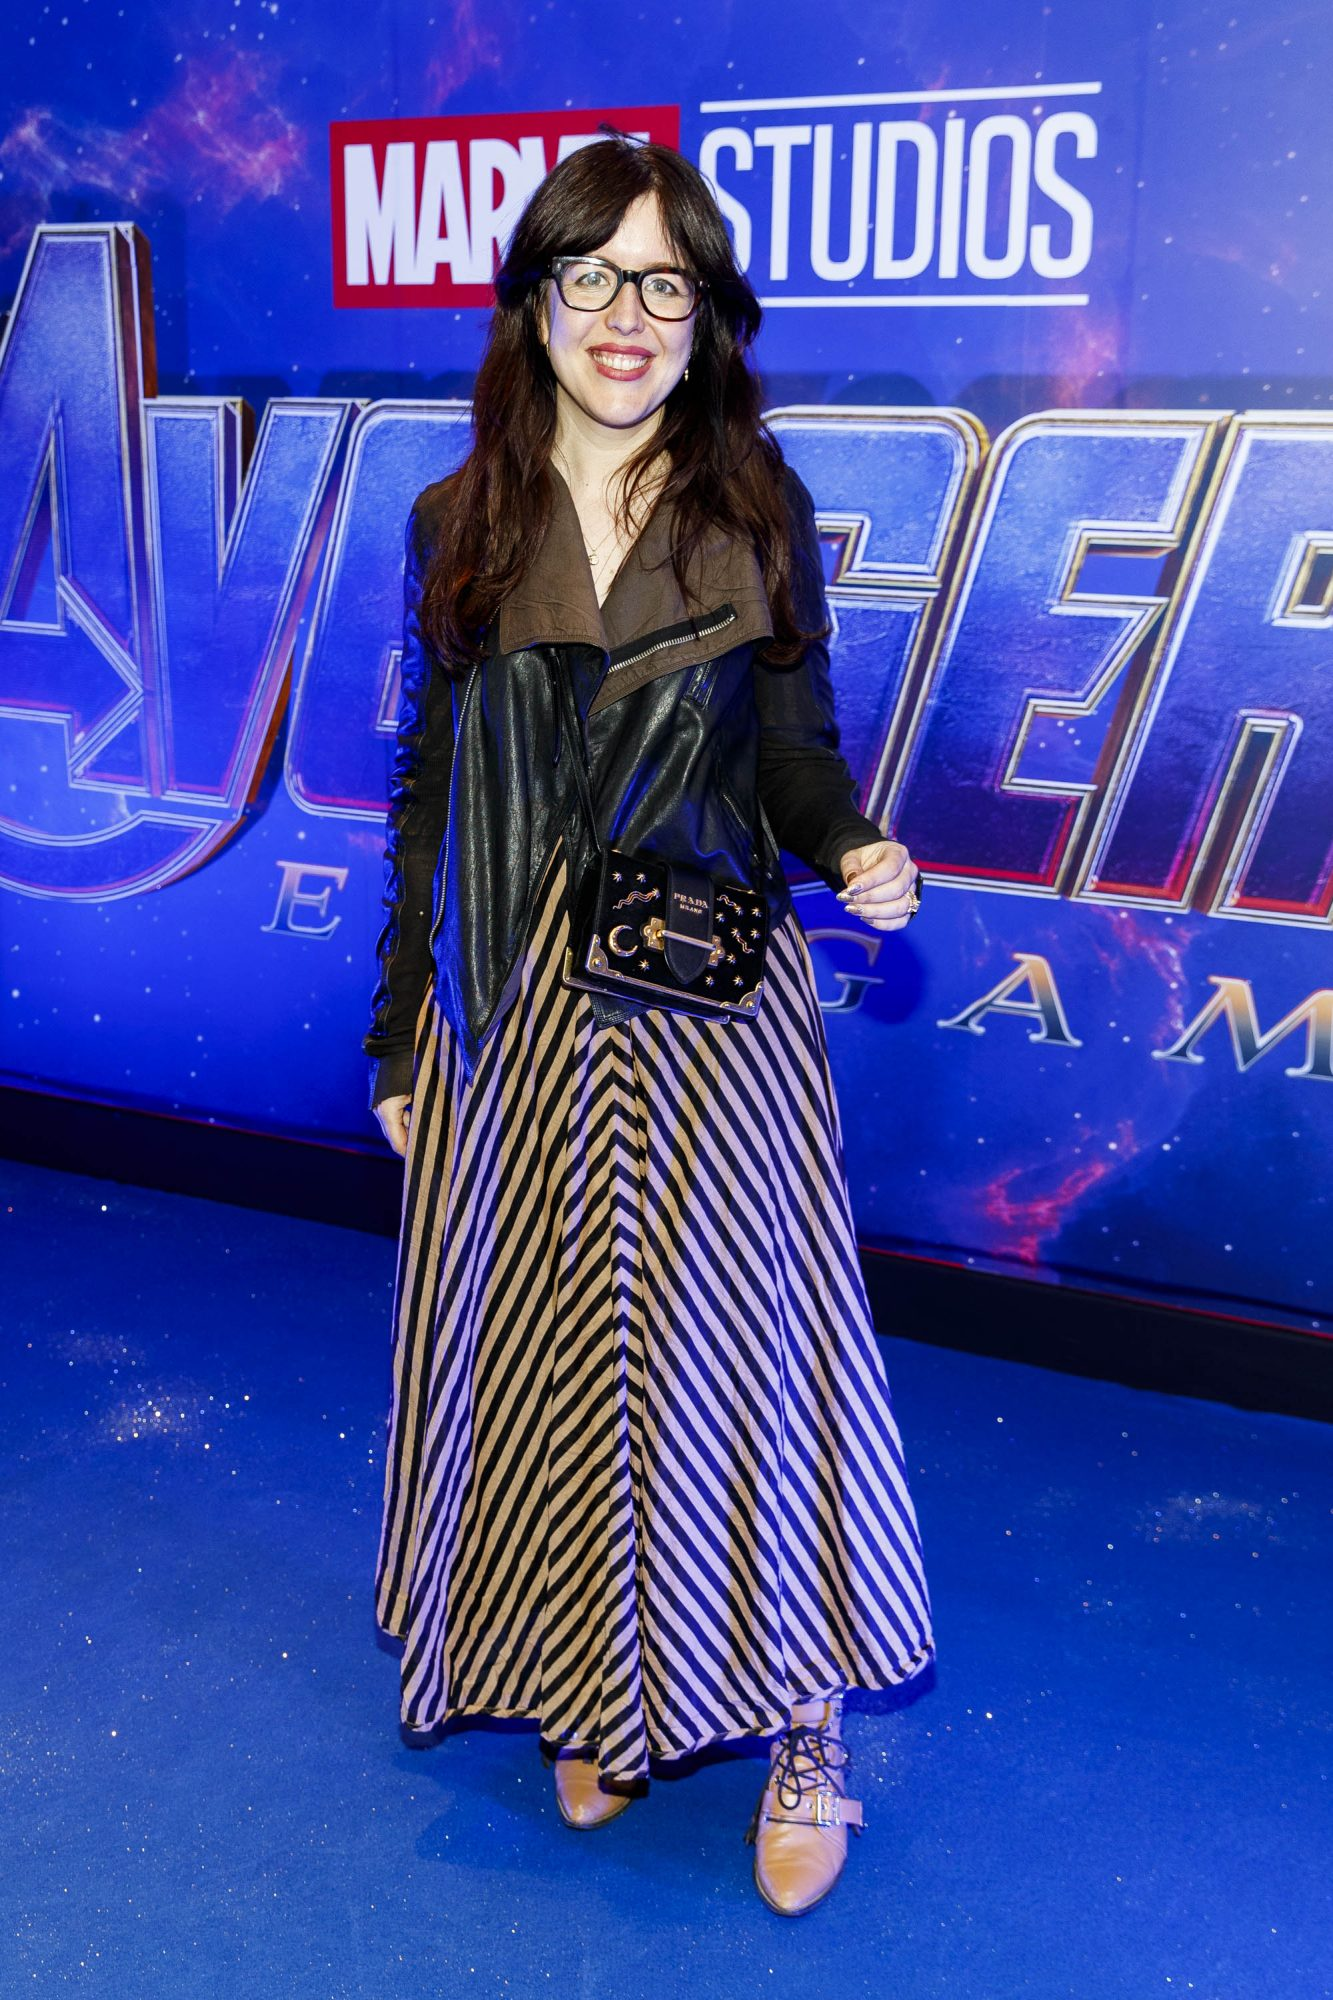 Chupi Sweetman pictured at the special preview screening of Marvel Studios' Avengers: Endgame at Cineworld Dublin. Picture by: Andres Poveda